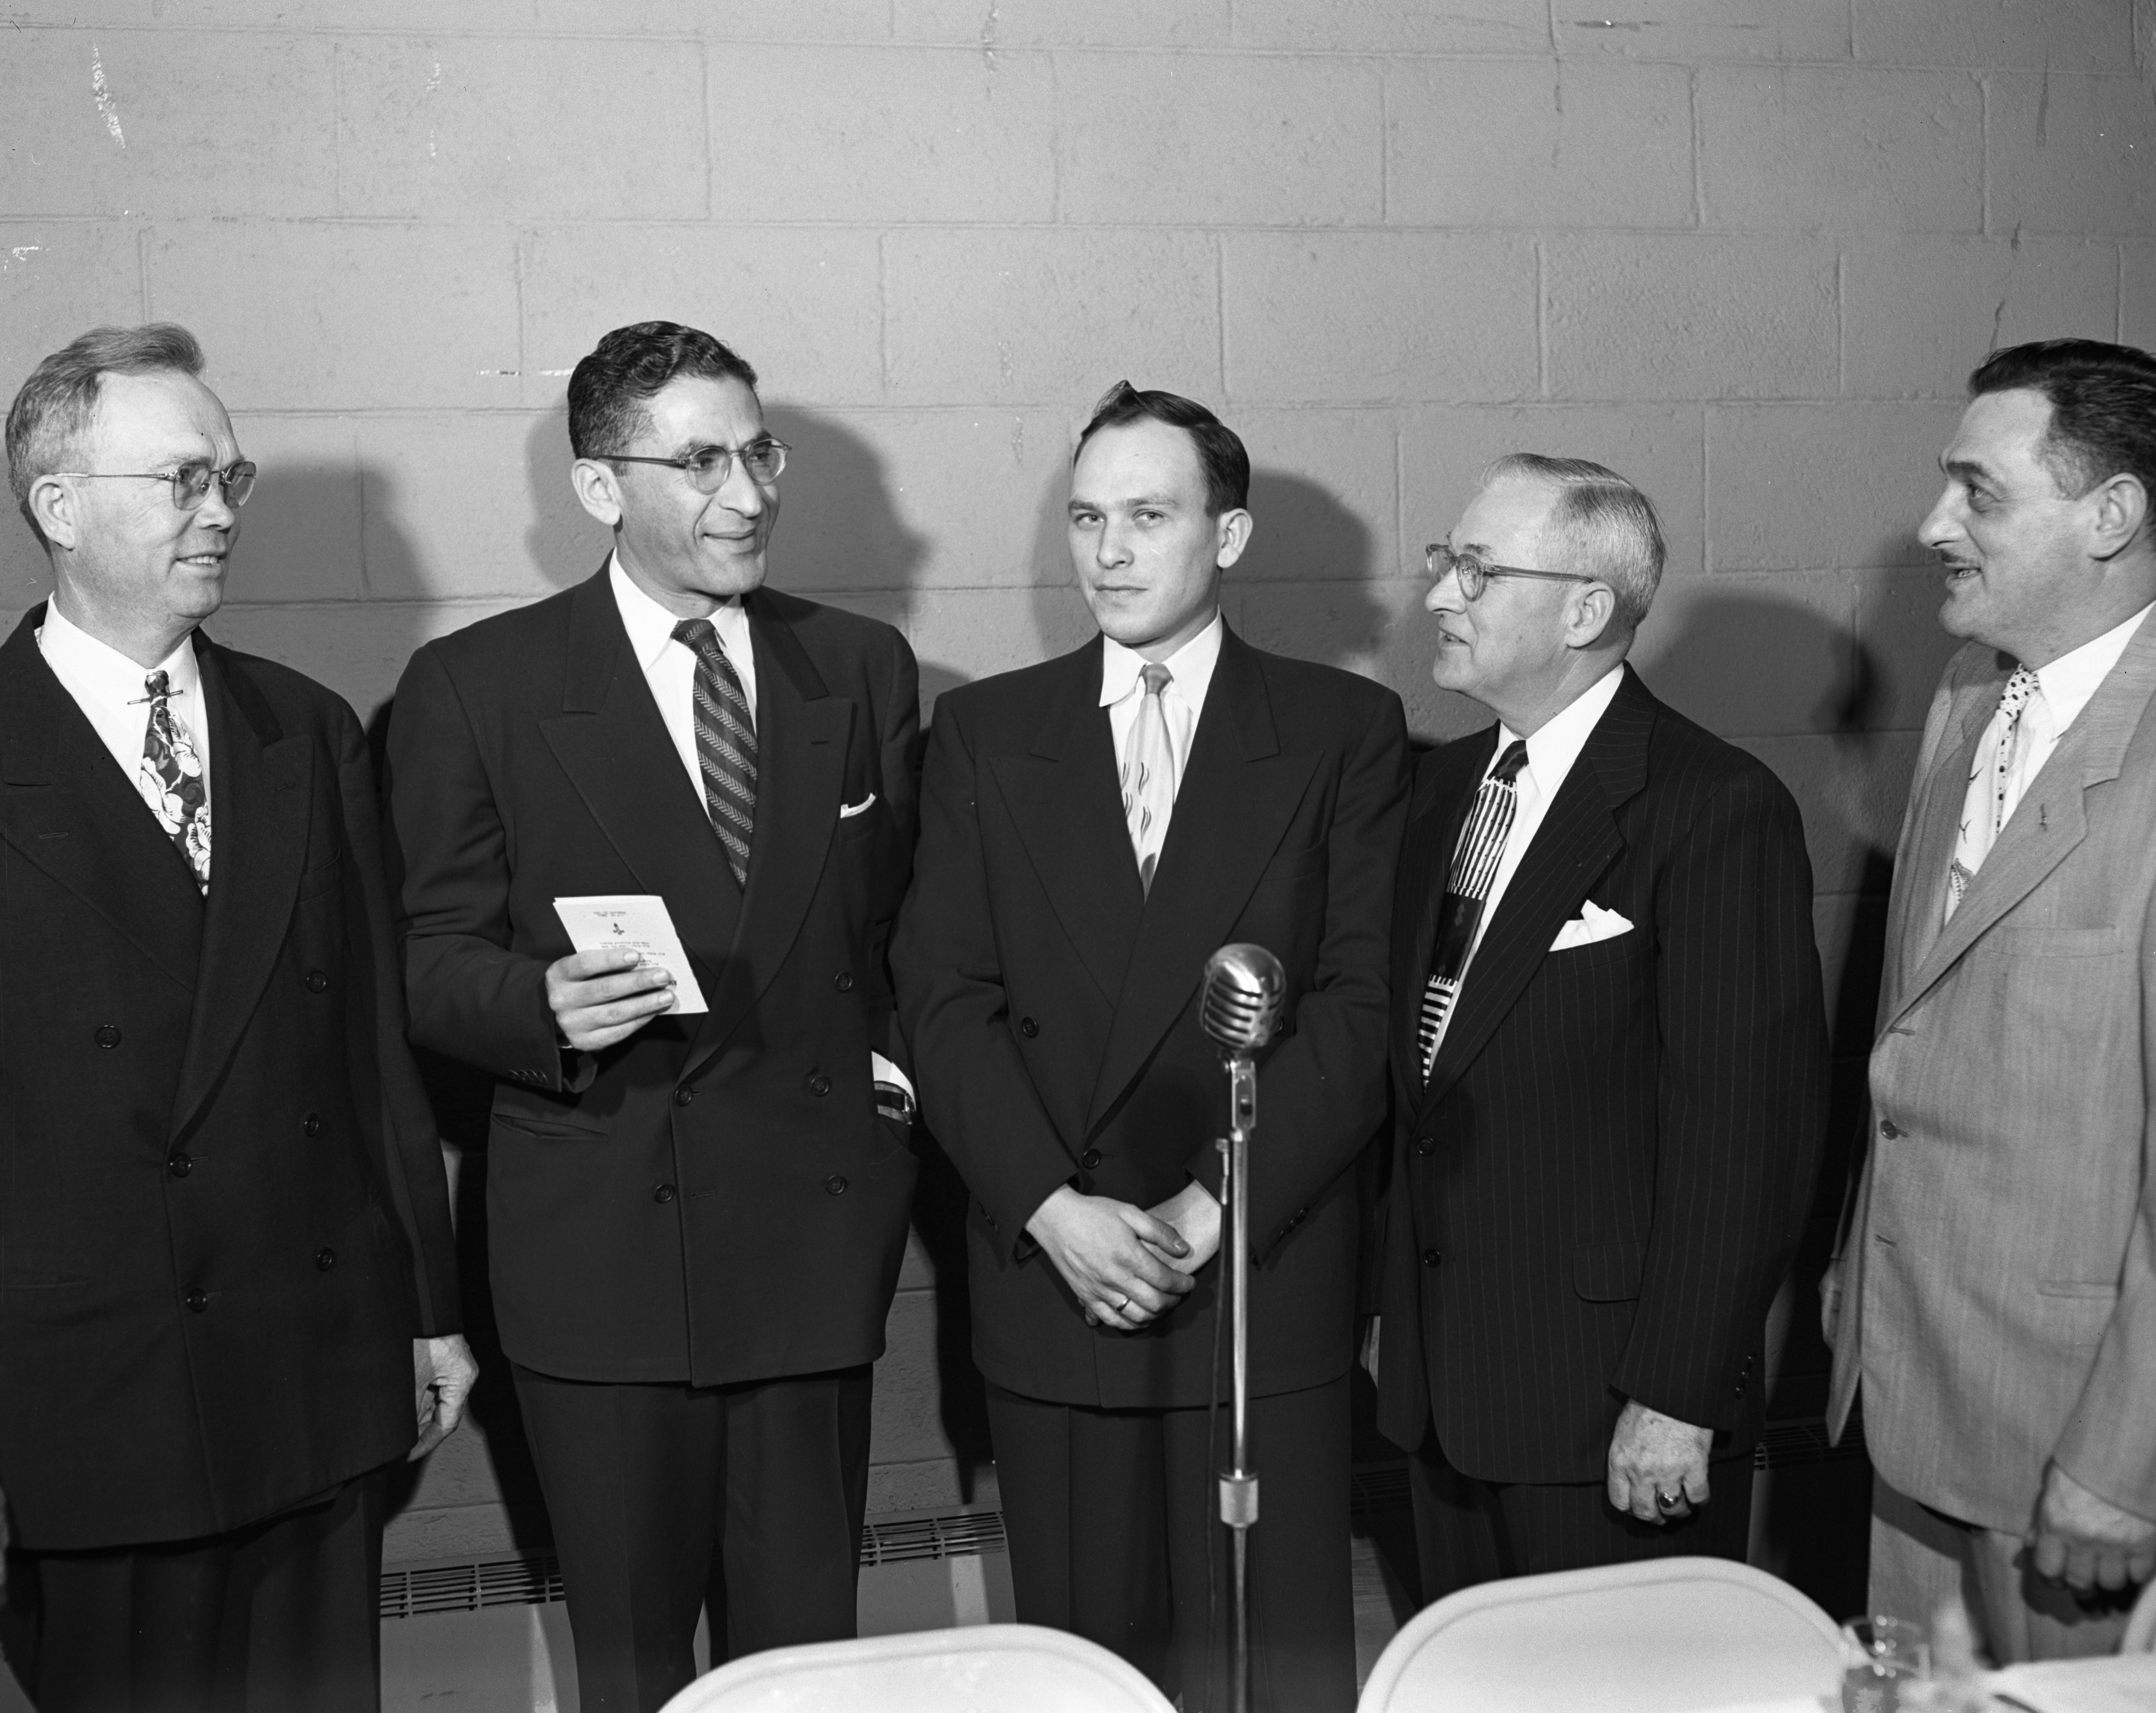 Second Annual All-Faith American Banquet, February 1952 image